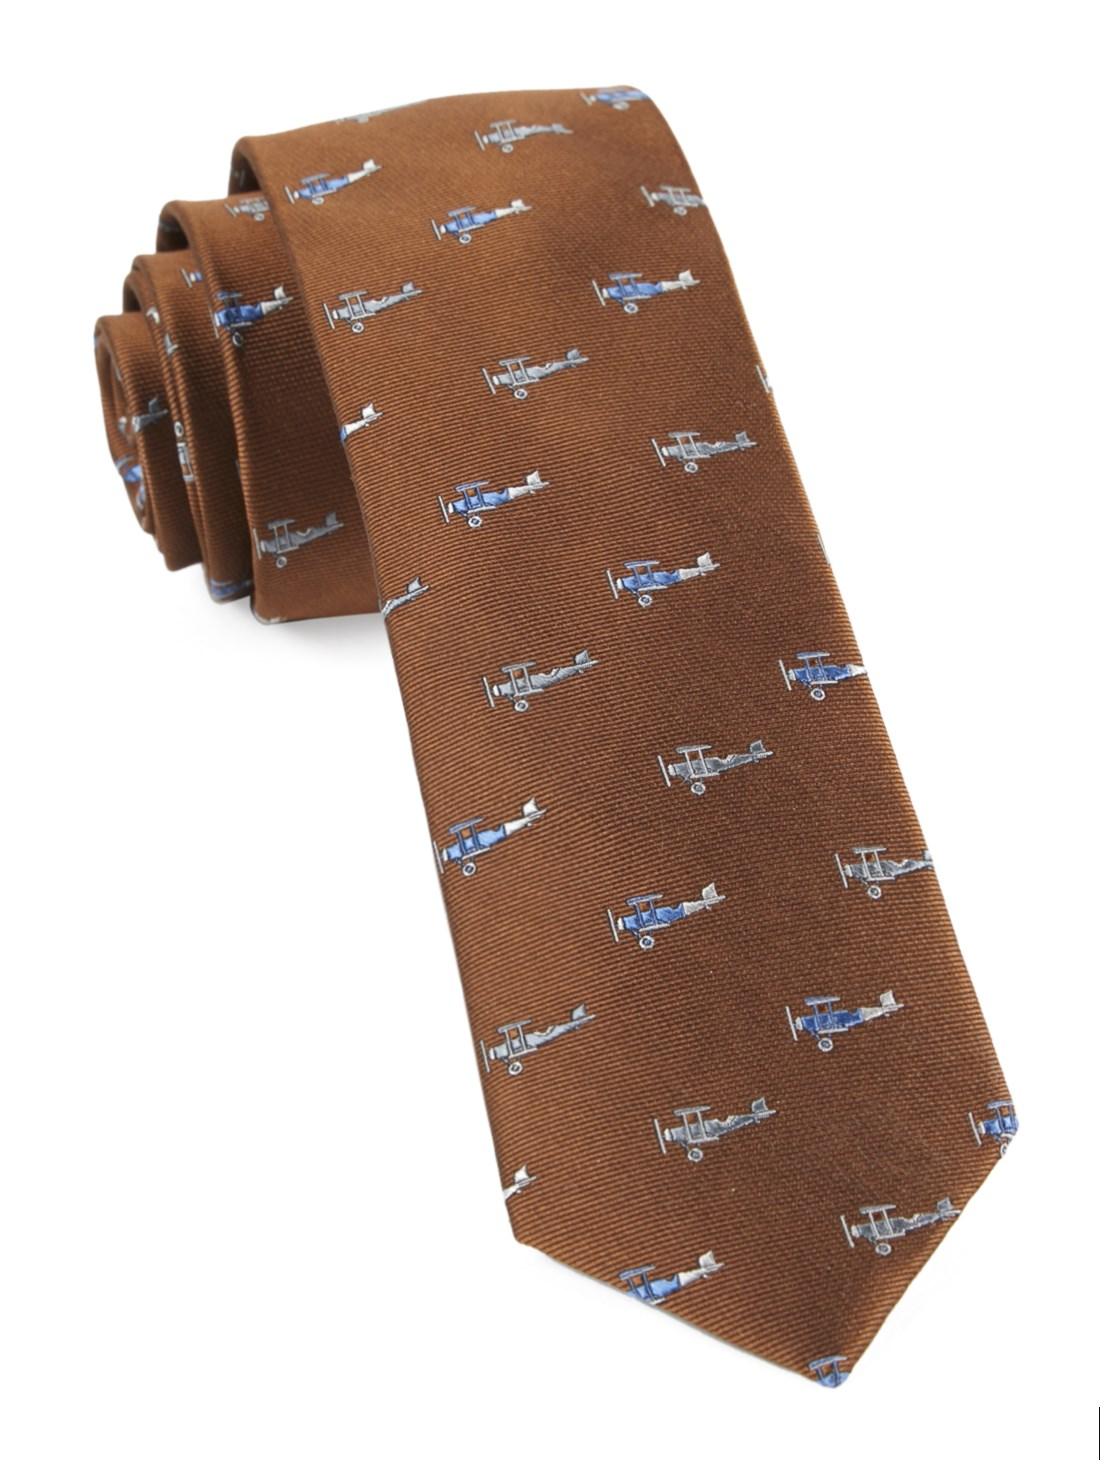 Linen Slim necktie - White polka dots on light orange plain weave - Notch OJIN Notch V674EawmS